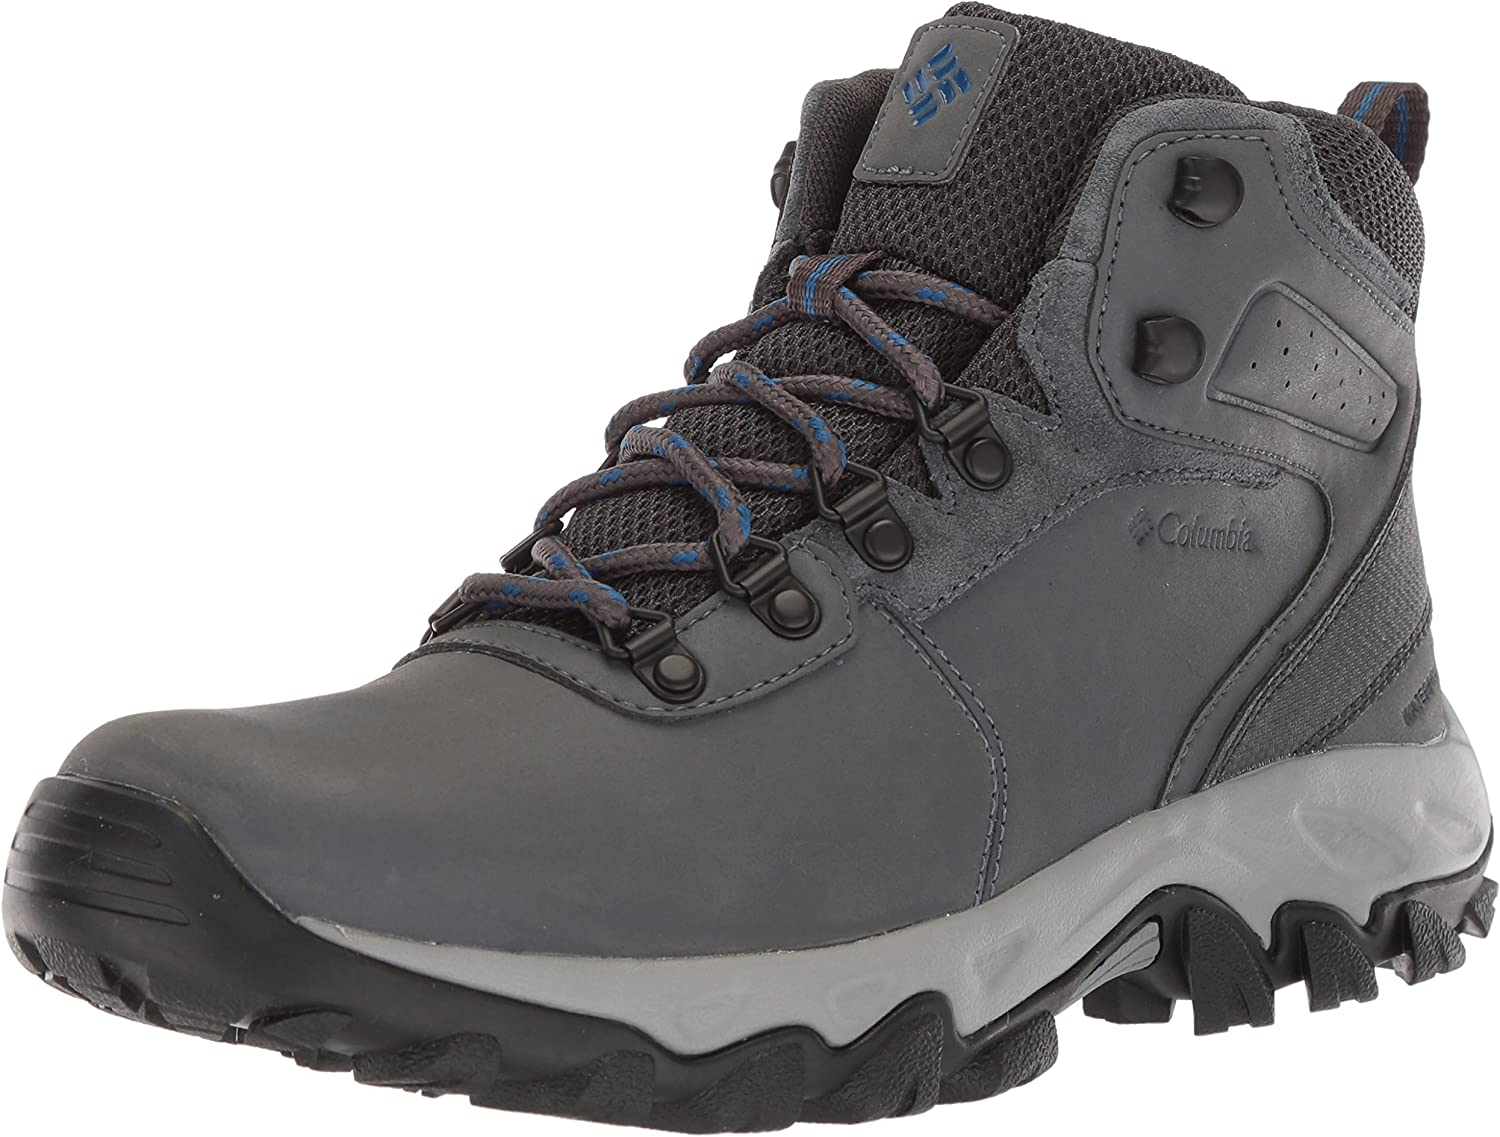 Columbia Men s Newton Ridge Plus II Waterproof Hiking Boot, Breathable, High-Traction Grip